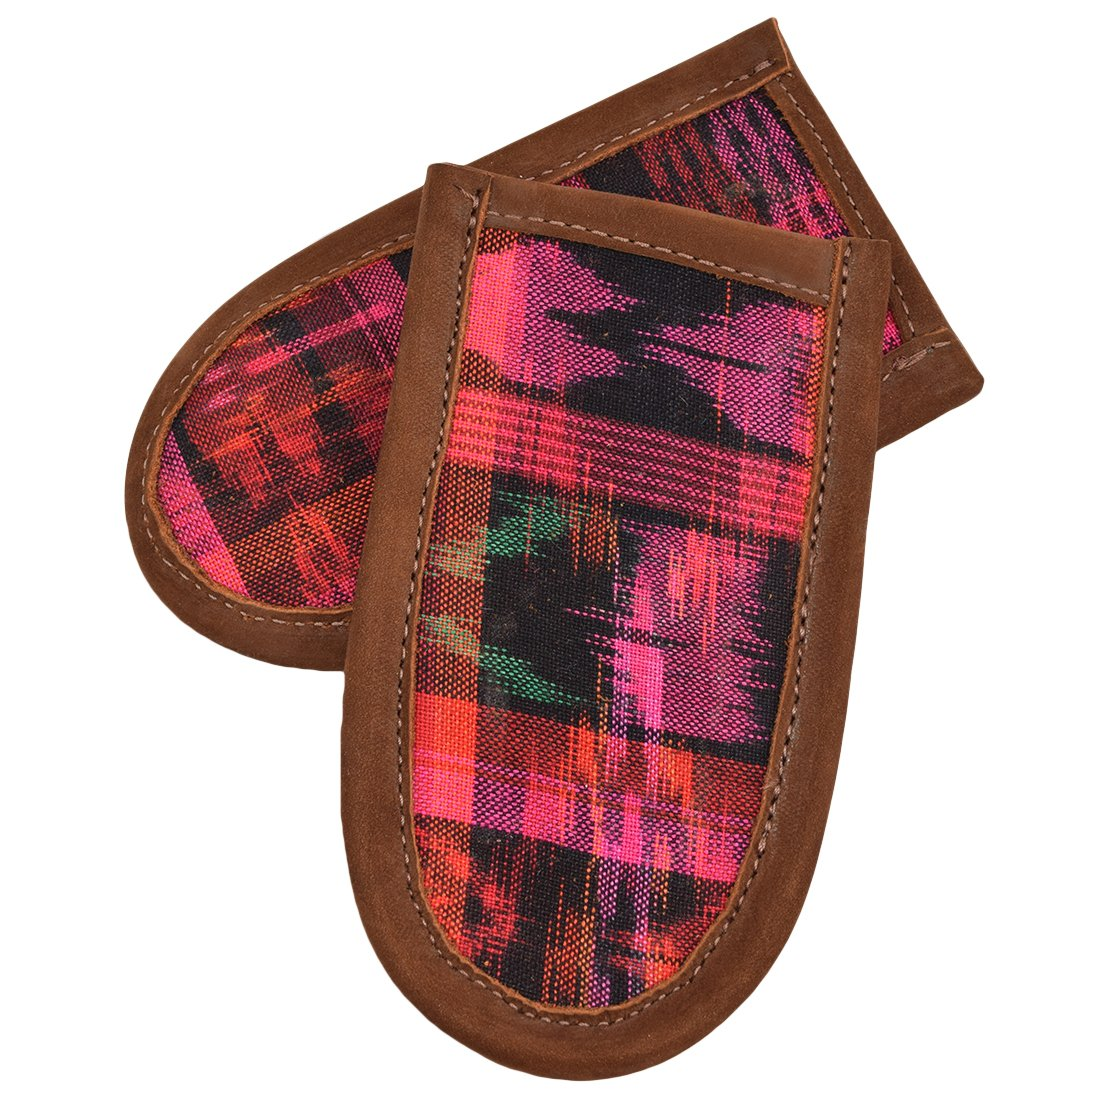 Cast Iron Panhandle Potholder Suede Interior Cook /& Bake 2-Pack Handmade Tropical Fuchsia Hide /& Drink Leather /& Tipico Cotton Hot Handle Holder